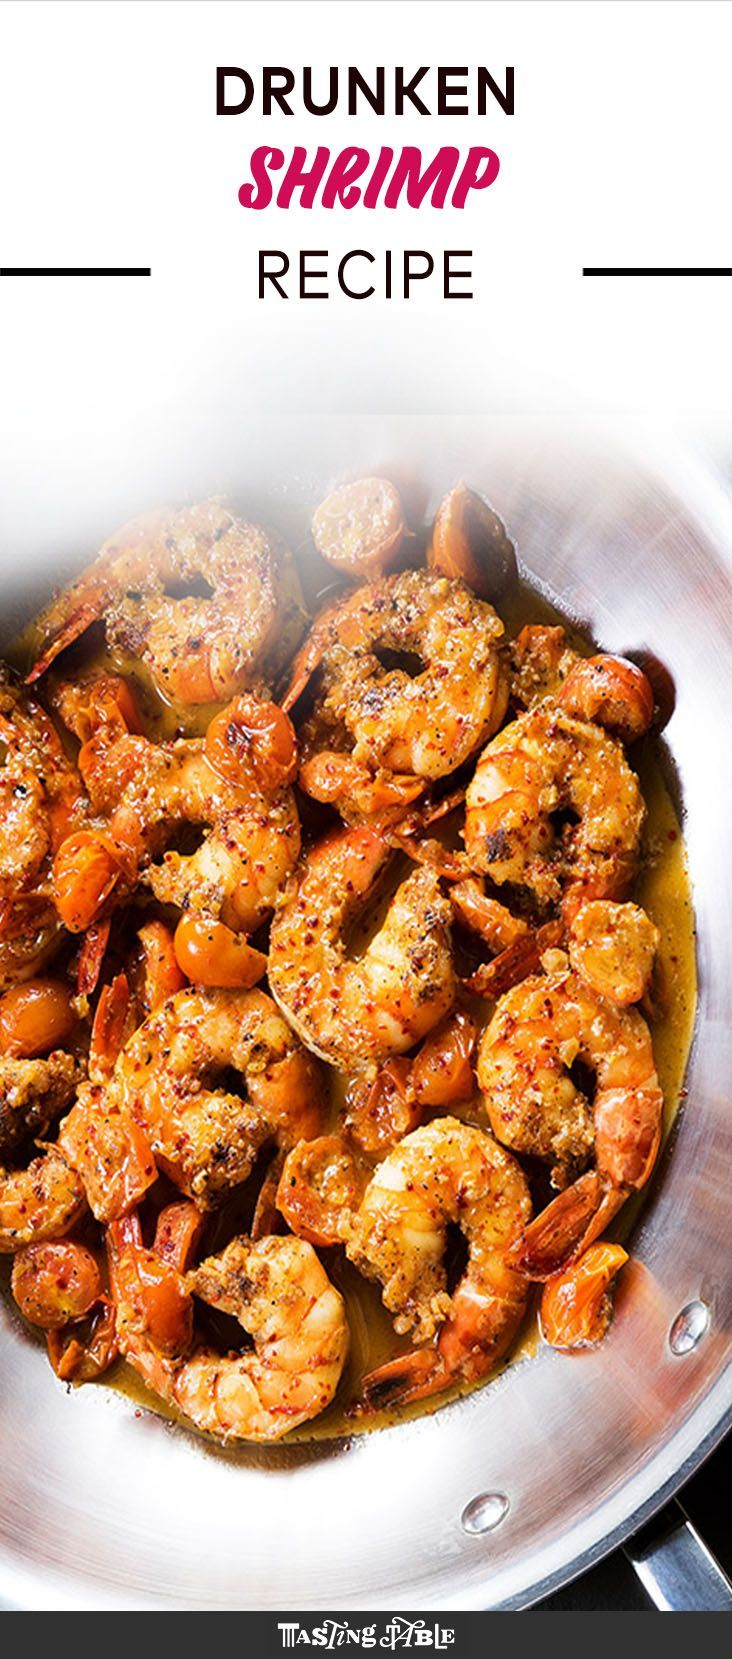 For an easy but epic dinner, fire up this seared shrimp with blistered cherry tomatoes that's deglazed with absinthe and finished with butter.